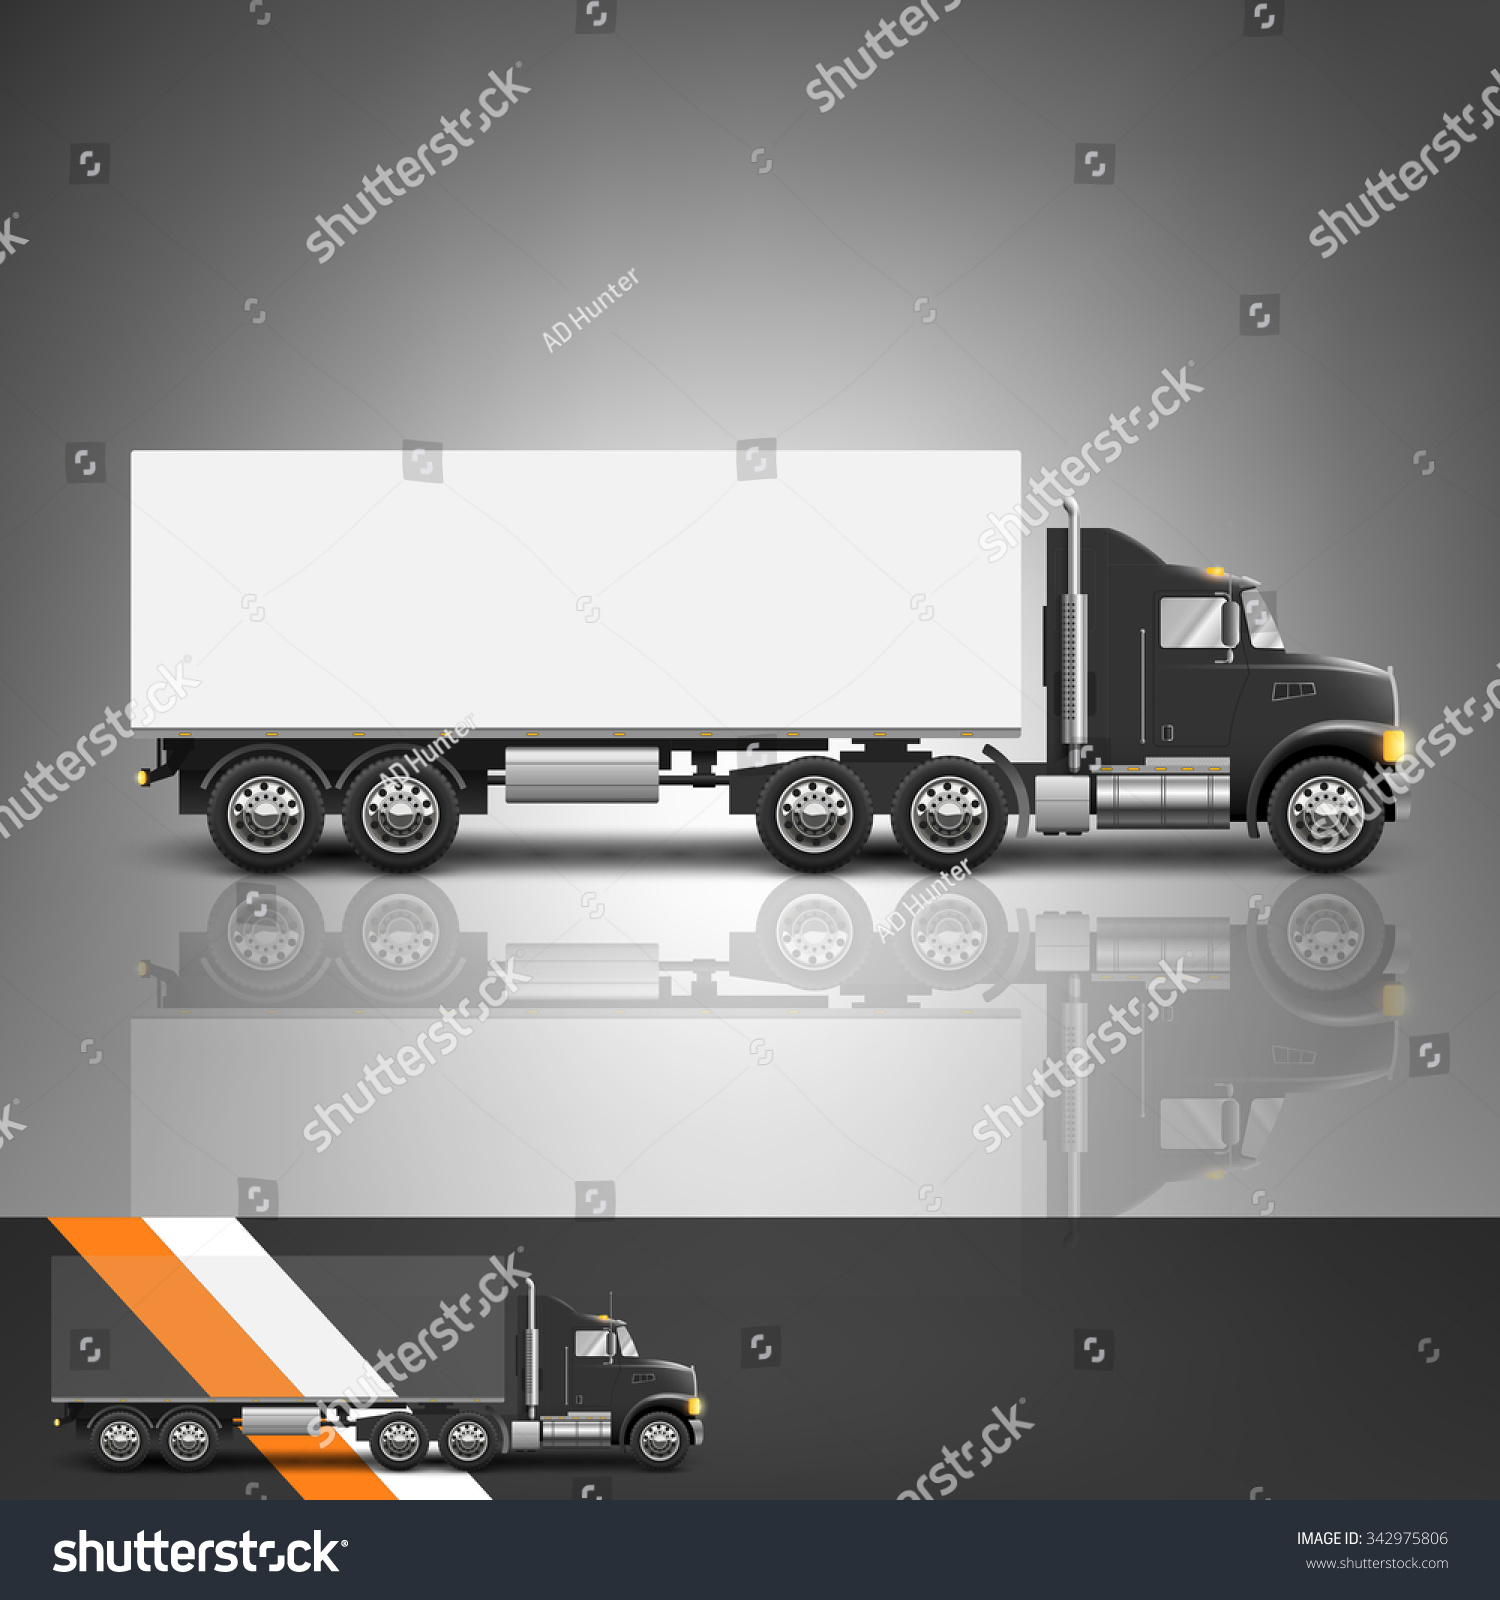 template advertising corporate identity transport truck stock template for advertising and corporate identity transport truck blank mockup for design